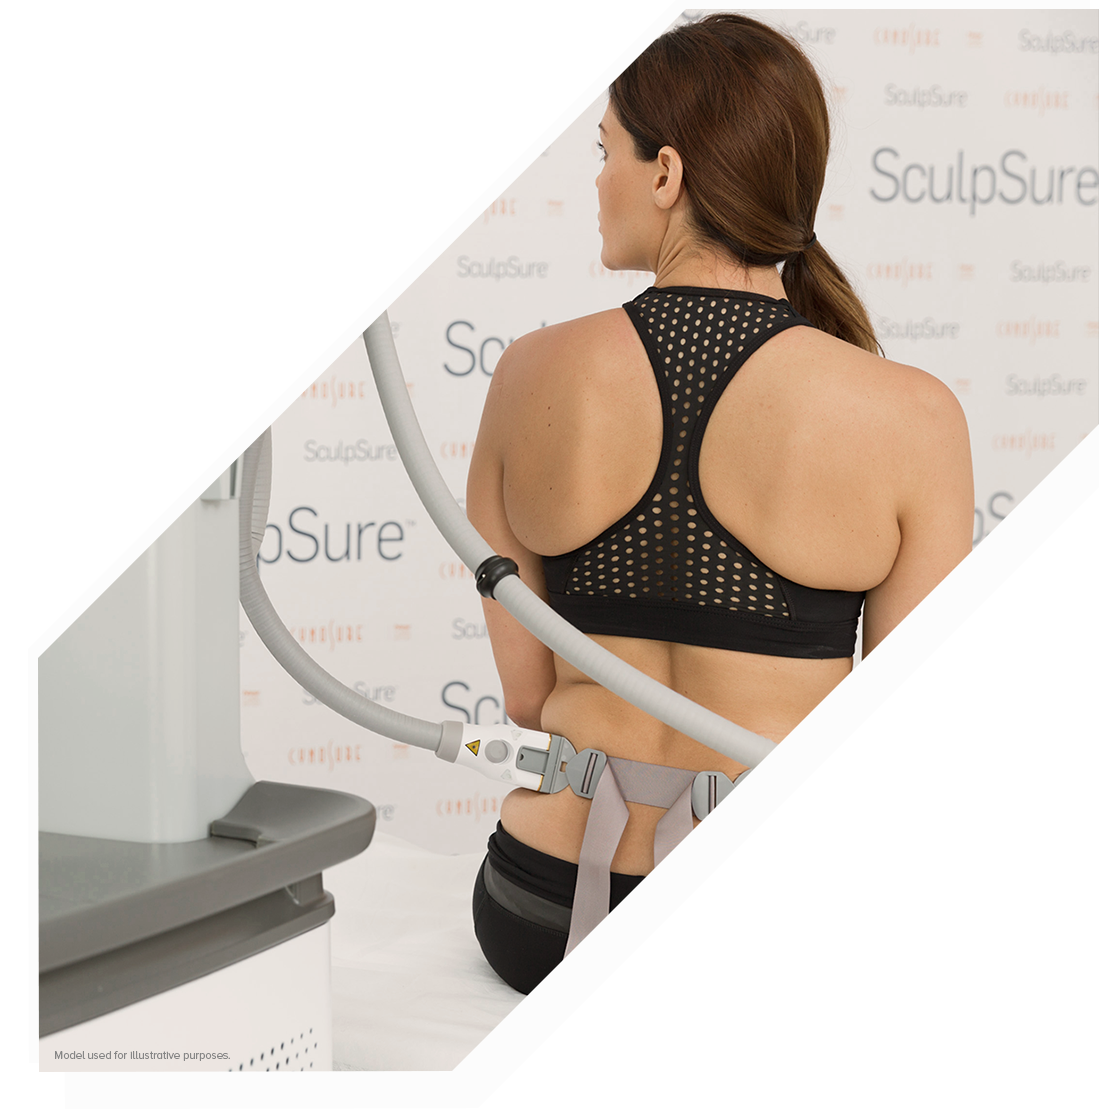 A back view of a woman receiving a SculpSure body contouring treatment